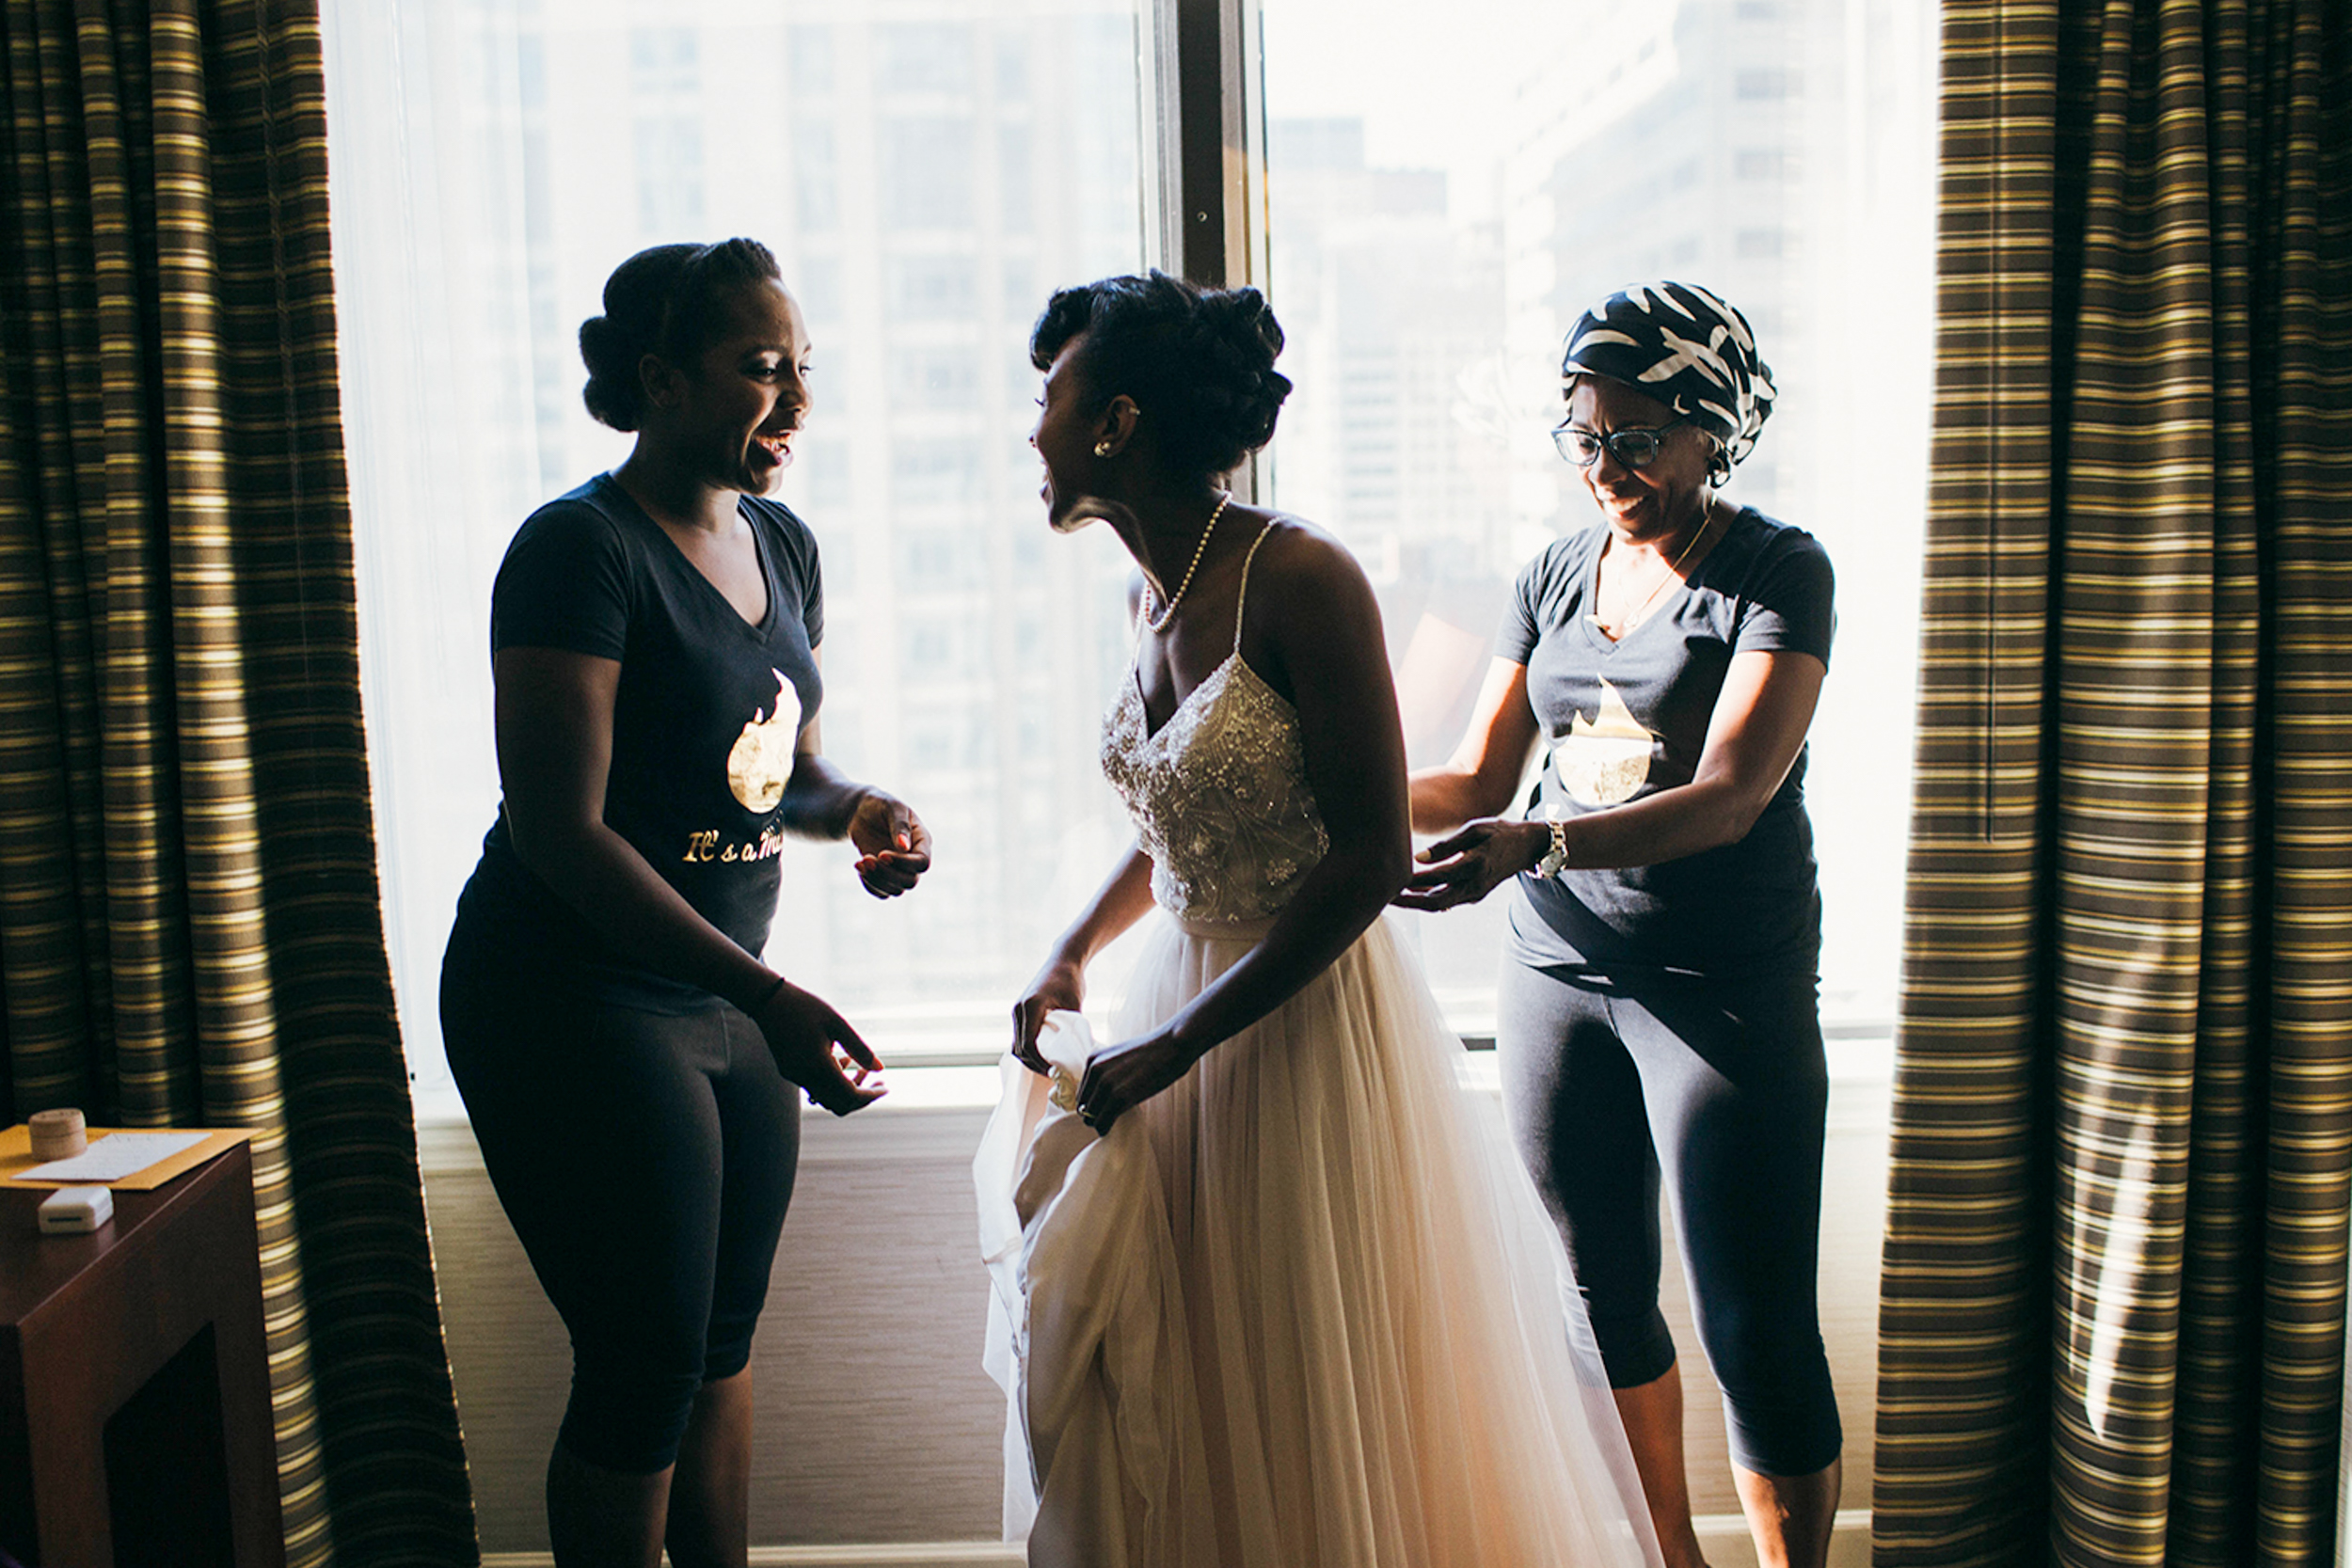 chicago.wedding.urban.intimate.zed451.lake.milton olive park-14.jpg